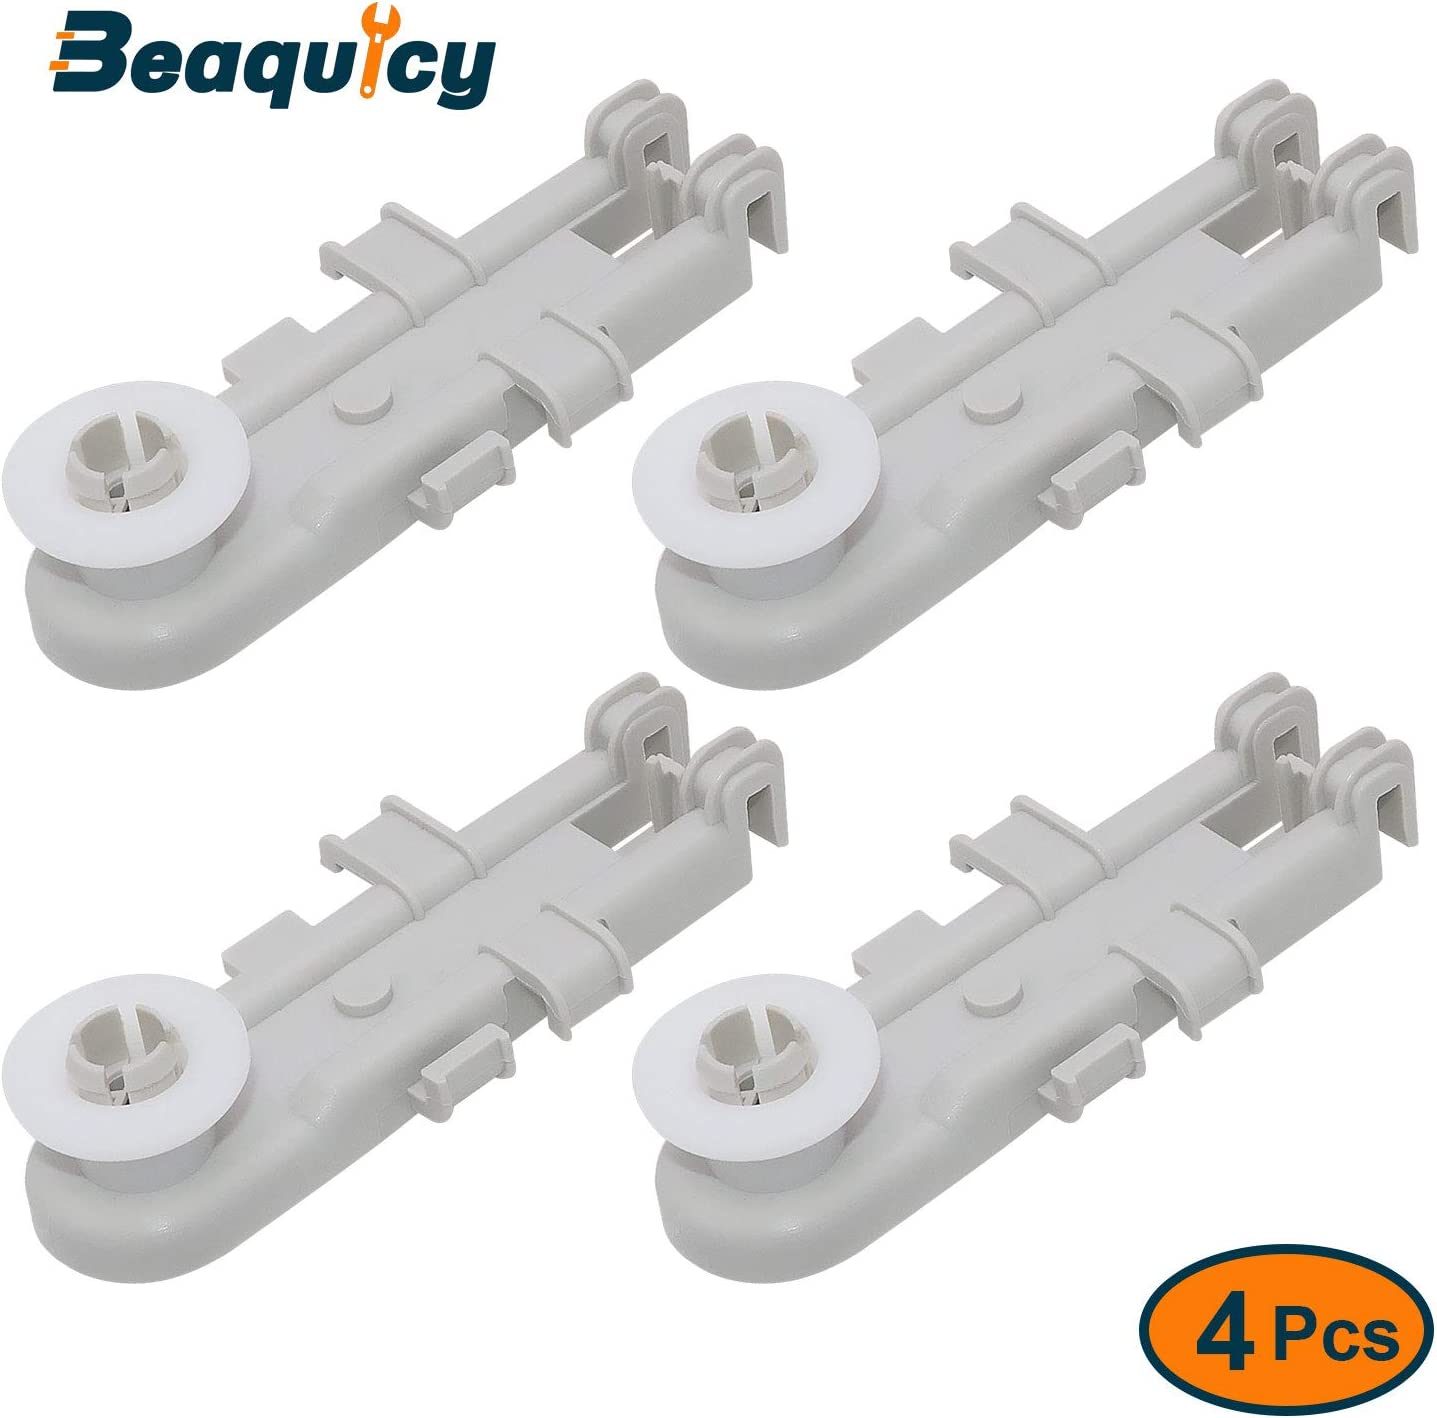 Beaquicy 8268743 Upper Rack Wheel - Replacement for Kenmore Kitchen Aid Whirlpool - Includes roller wheel, roller axle, rack mount for 4 Pack Set